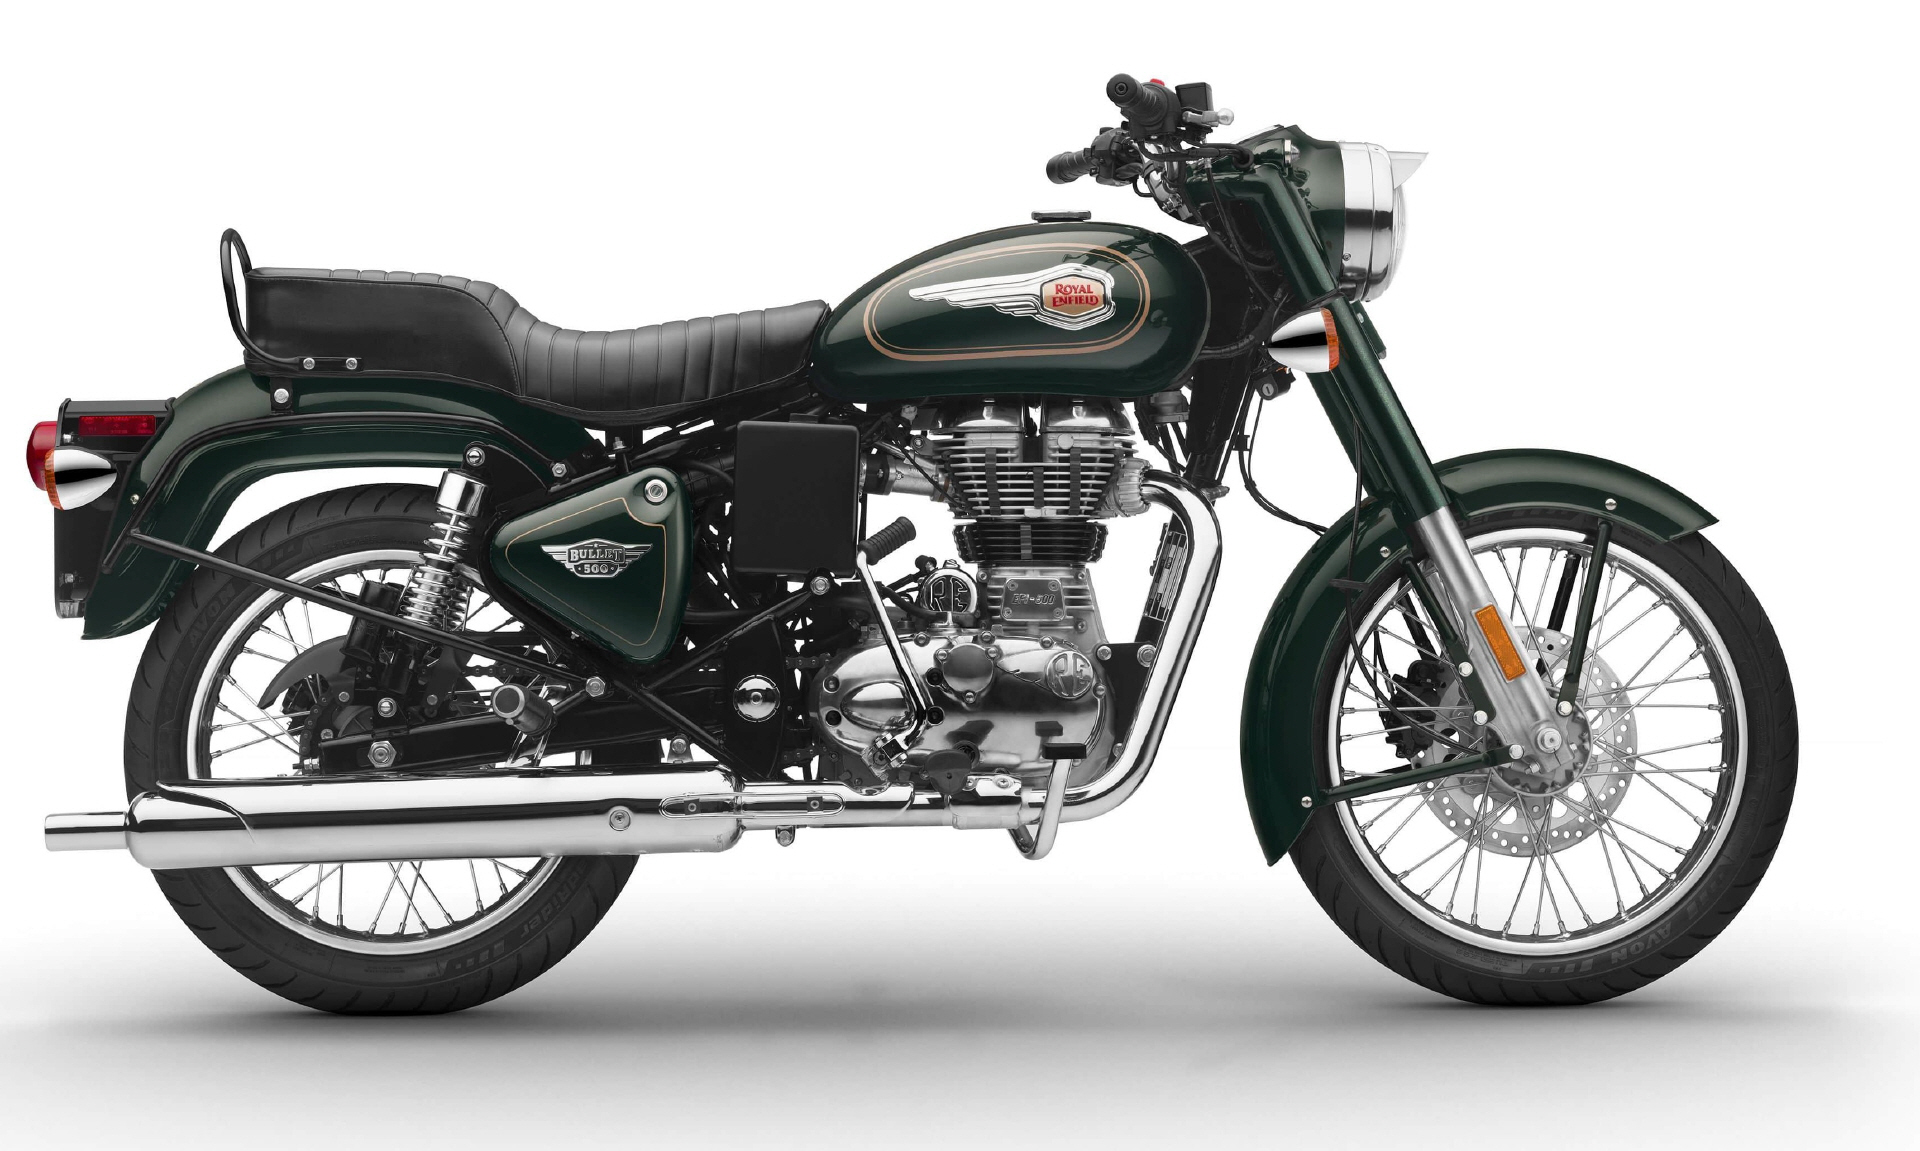 royalenfield_bullet_forestgreen_06jpg